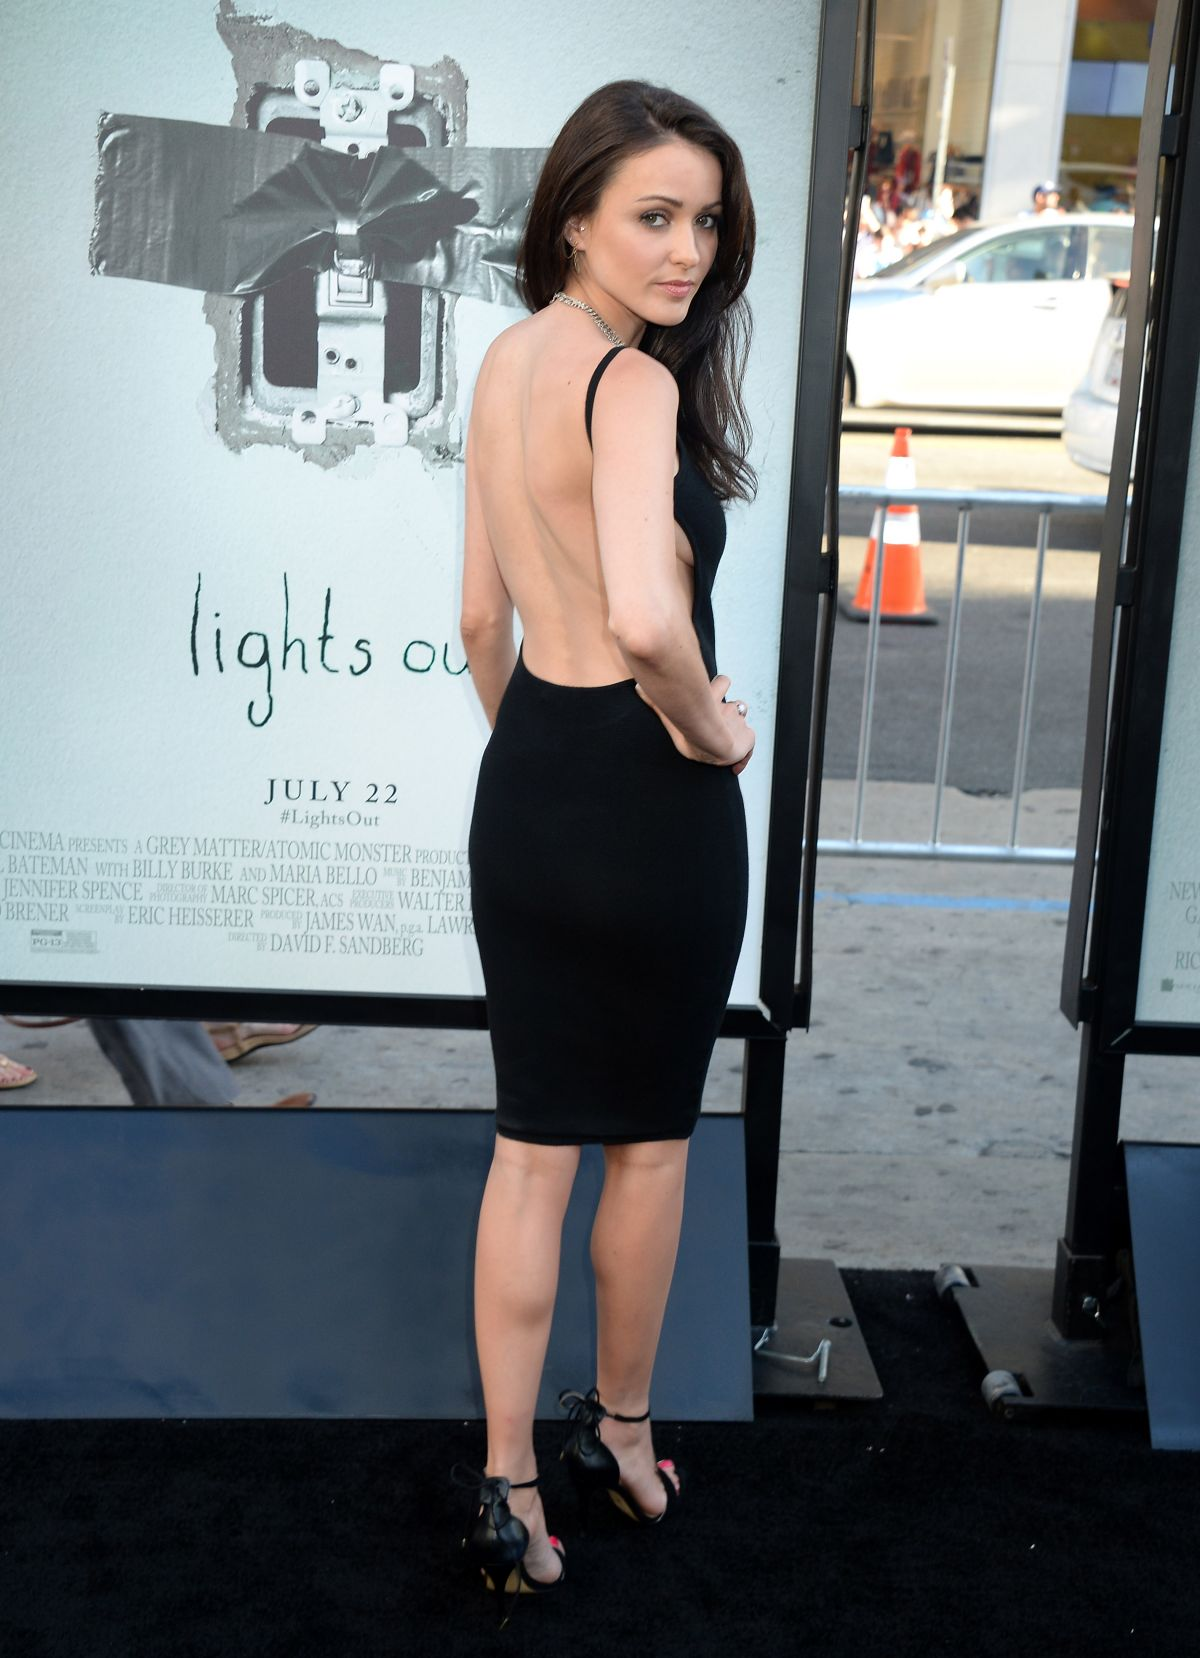 Karen Hassan At 'Light... Jennifer Aniston